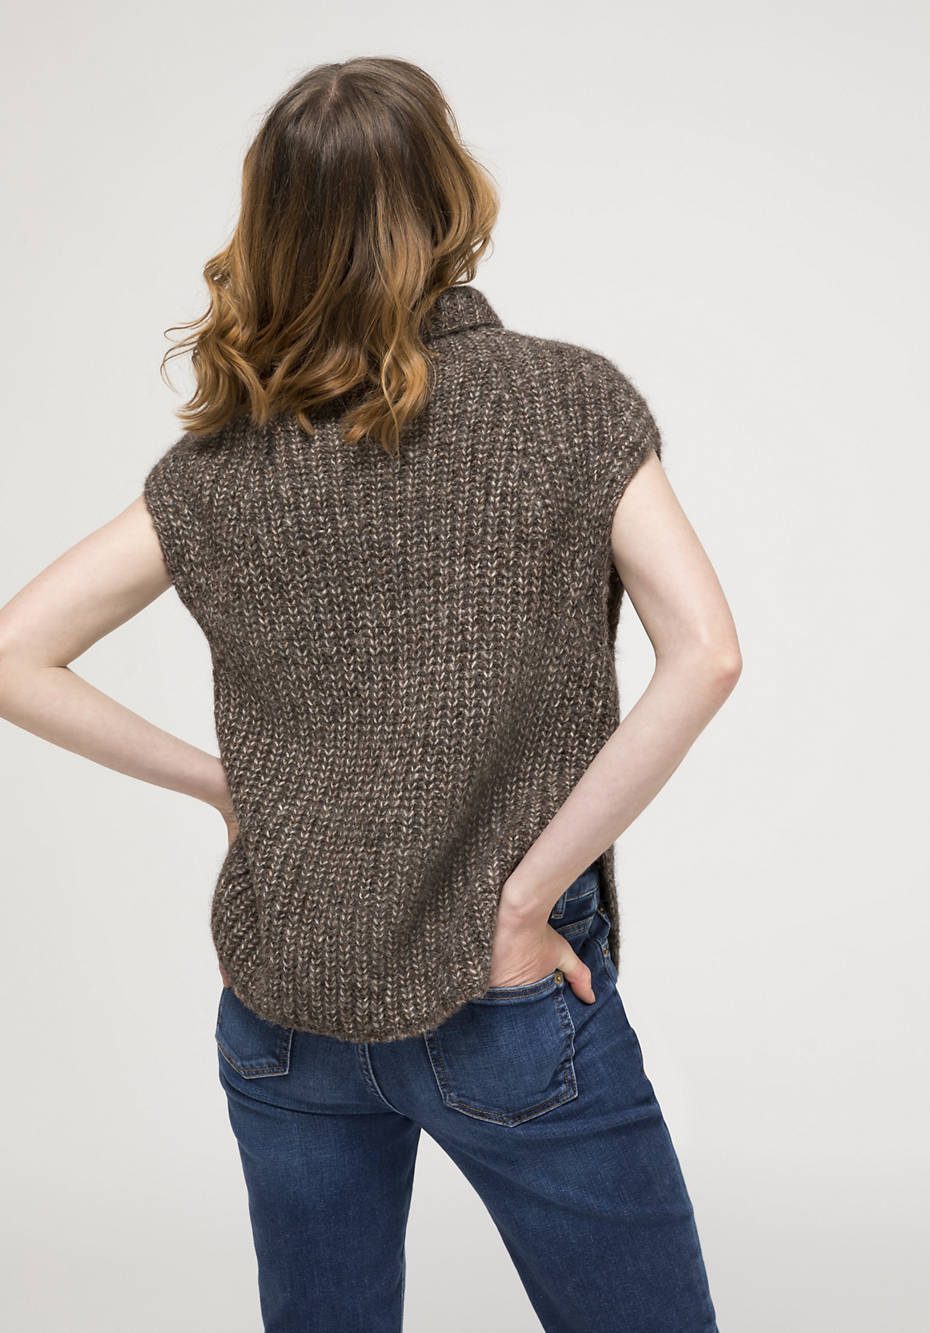 Limited by Nature pullover made of alpaca with pima cotton